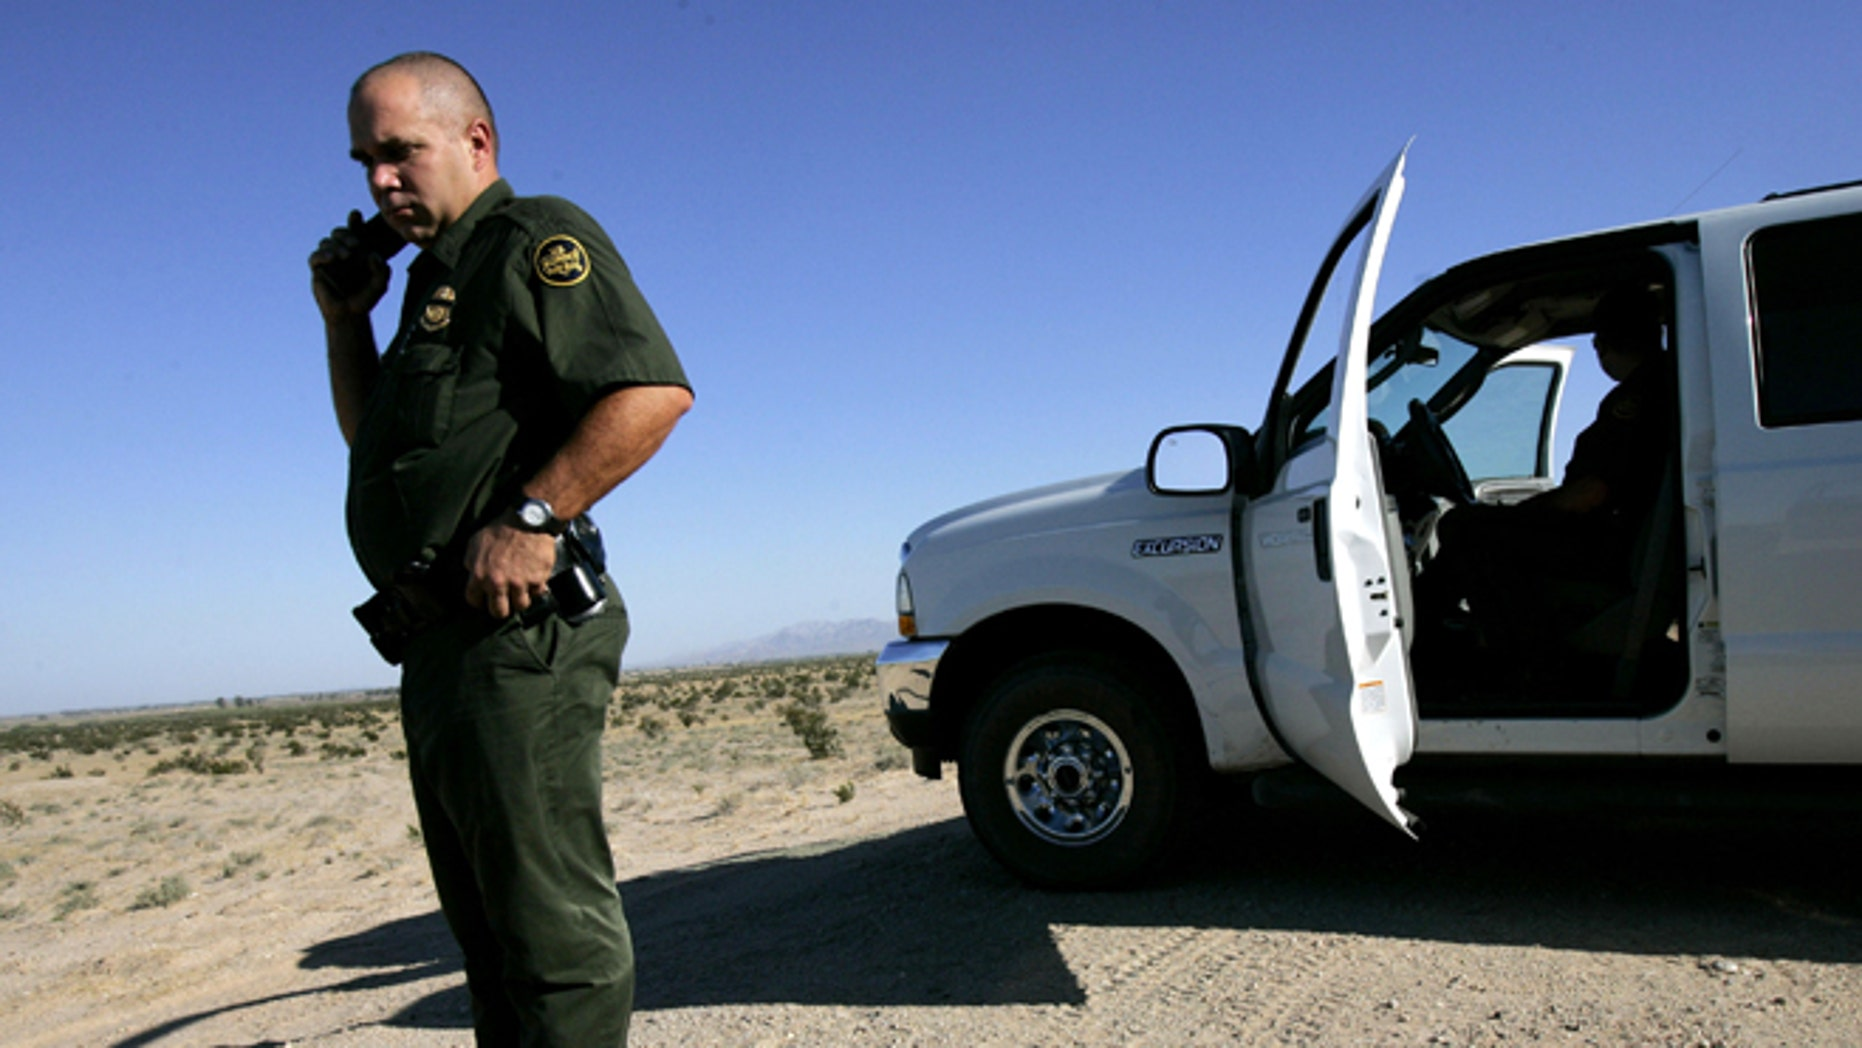 EL CENTRO, CA - AUGUST 29:  Border Patrol agent, Scott Plesuk, patrols the border in the desert August 29, 2005 near El Centro, California. The governors of New Mexico and Arizona have declared a state of emergency along the border due to drug trafficking, illegal immigration and threat of terrorists coming through Mexico.  (Photo by Sandy Huffaker/Getty Images)